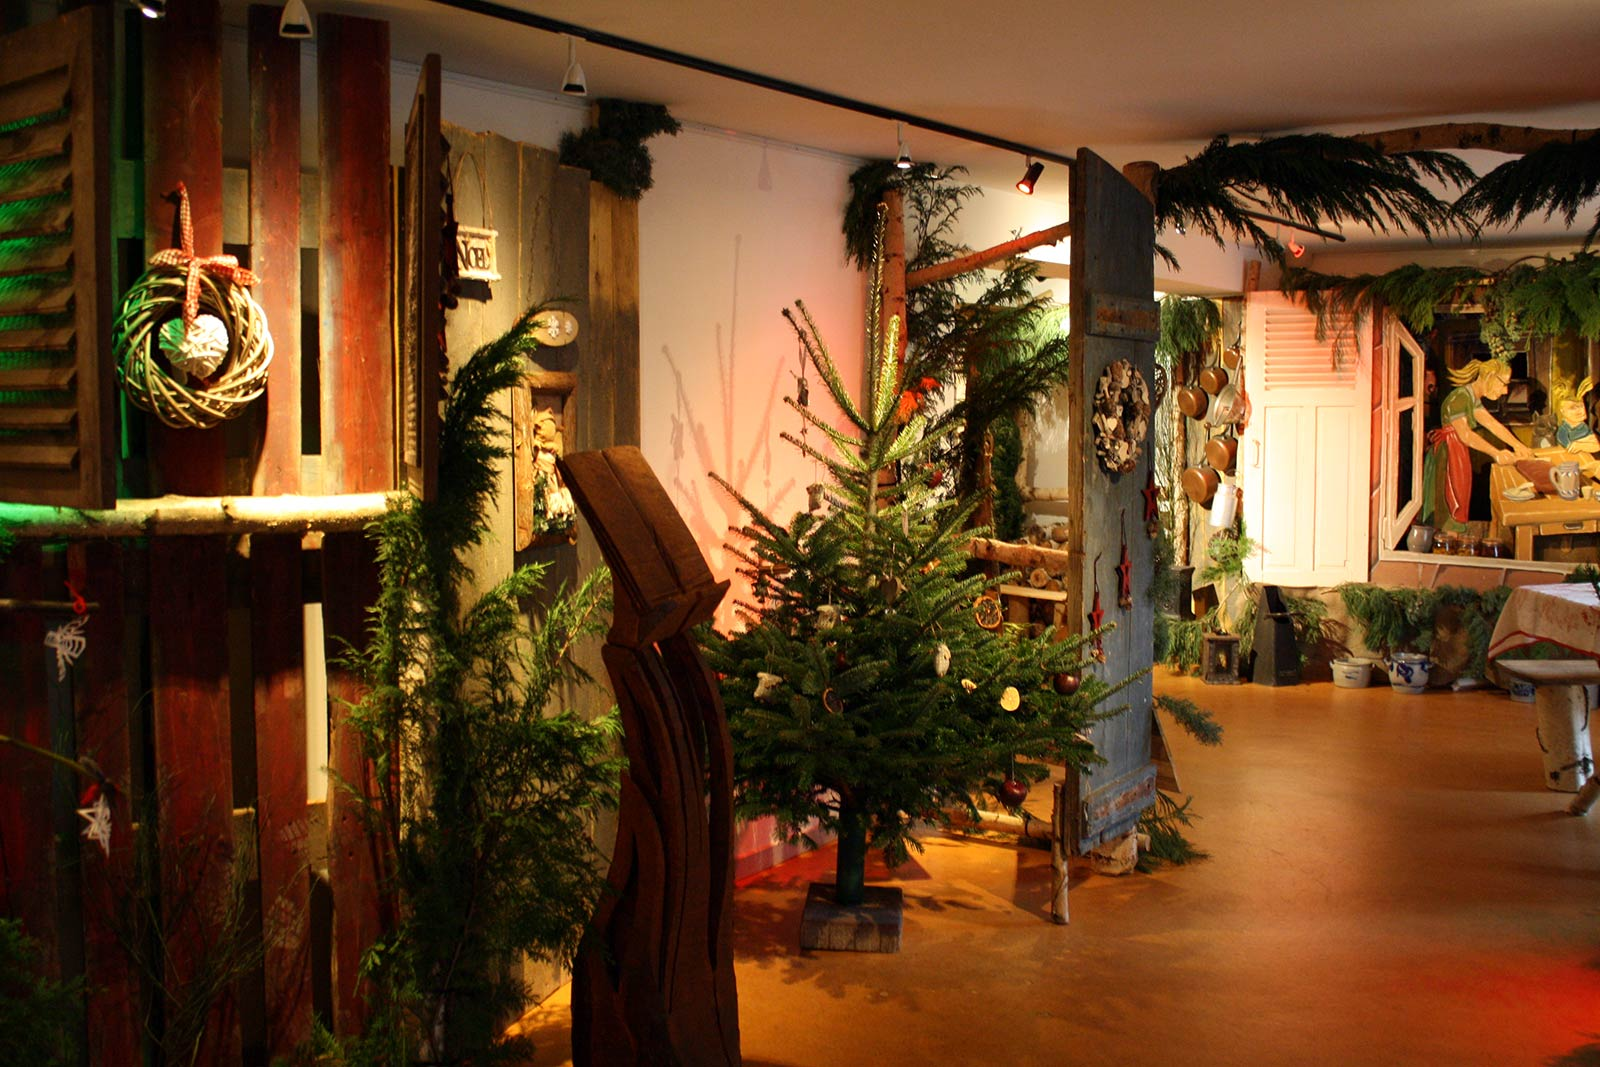 Week-end for discovering the Christmas of yesteryear